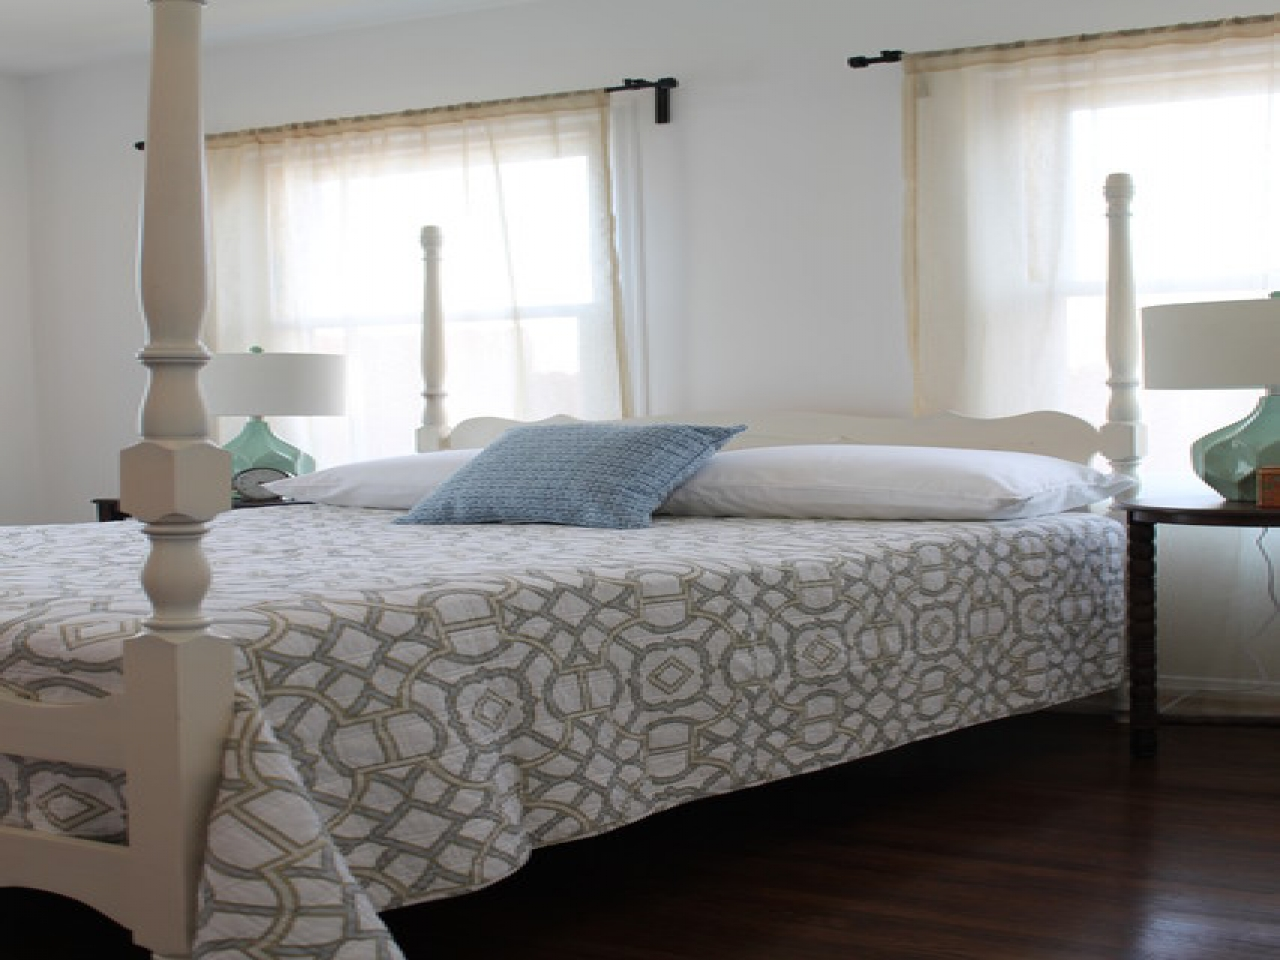 Four Poster Bed White Room photo - 8